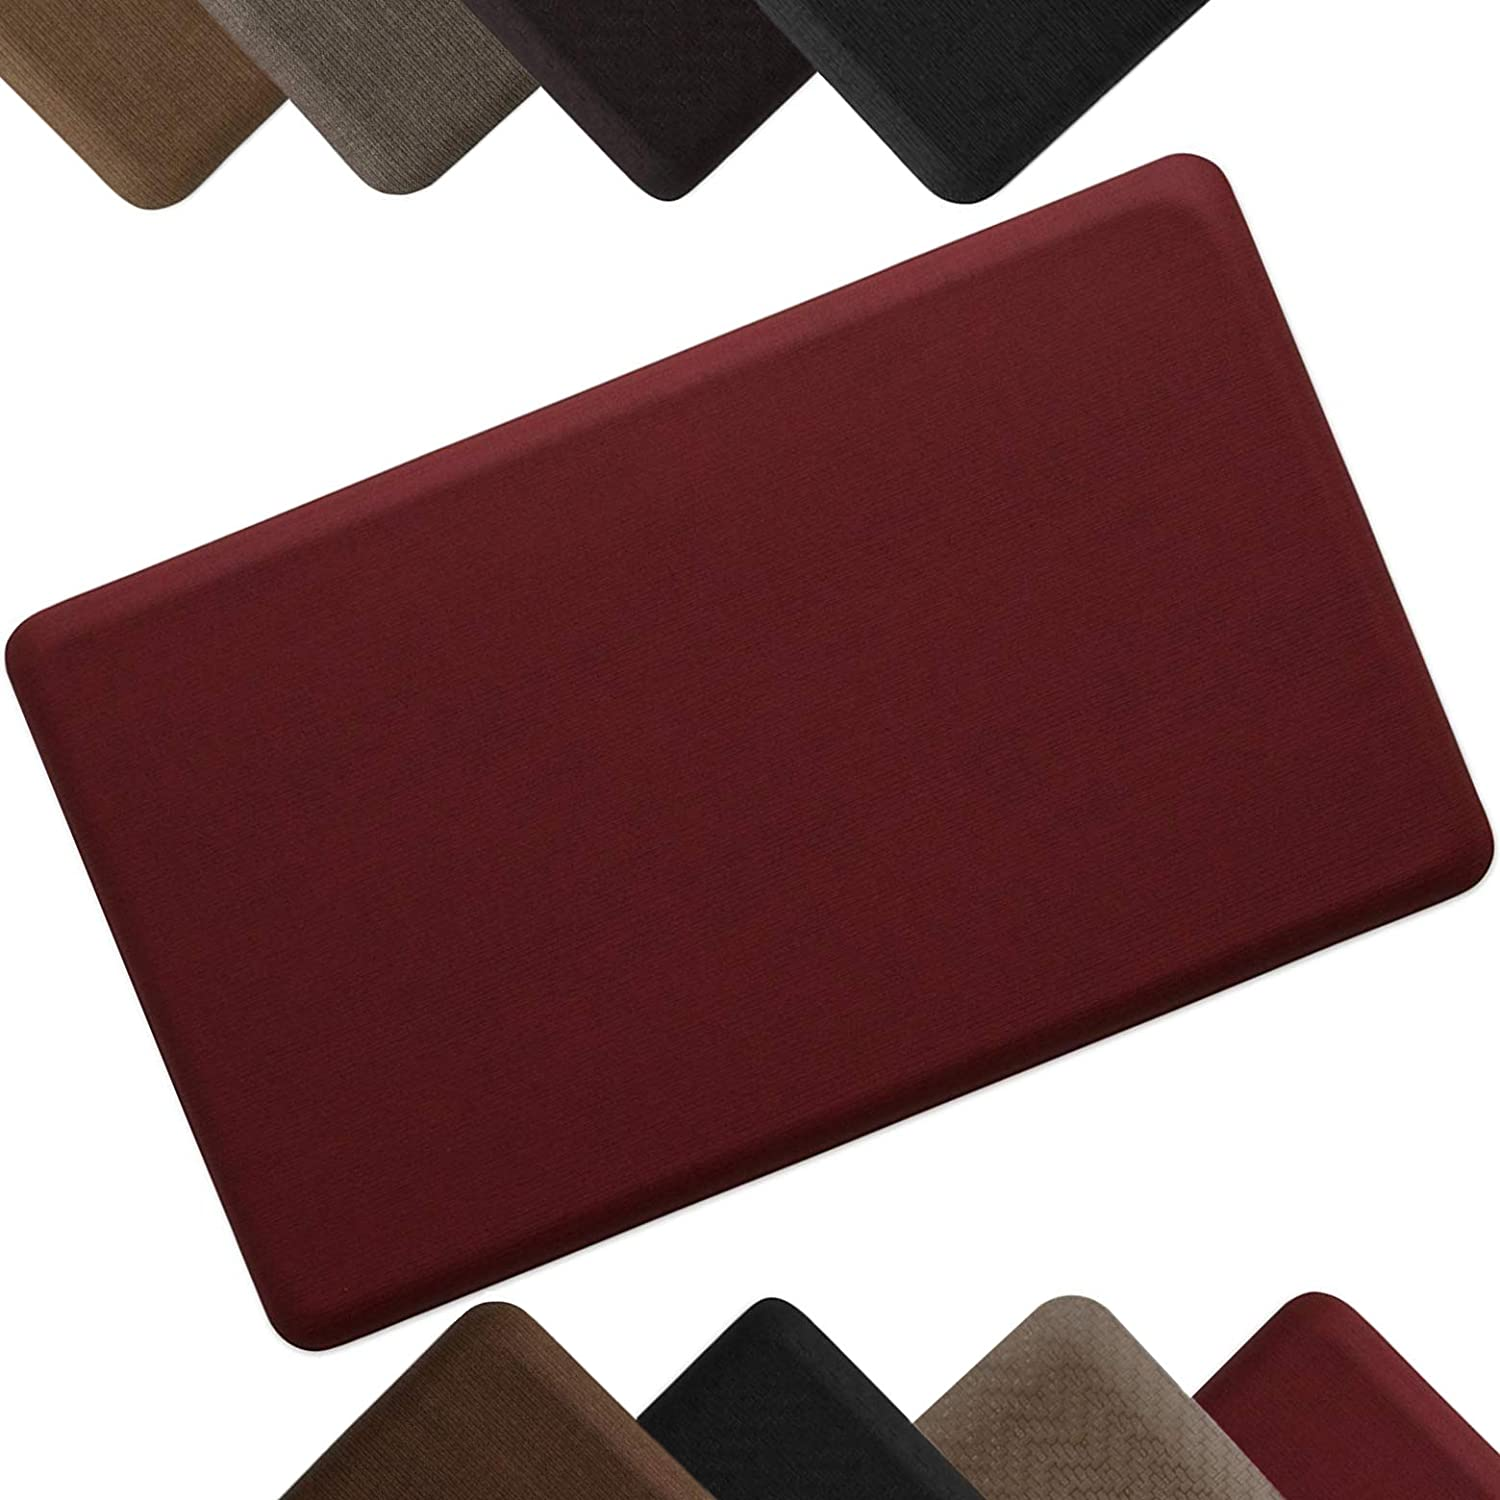 """NewLife by GelPro Anti-Fatigue Designer Comfort Kitchen Floor Mat Stain Resistant Surface with 5/8"""" thick ergo-foam core for health and wellness 18x30 Grasscloth Crimson"""